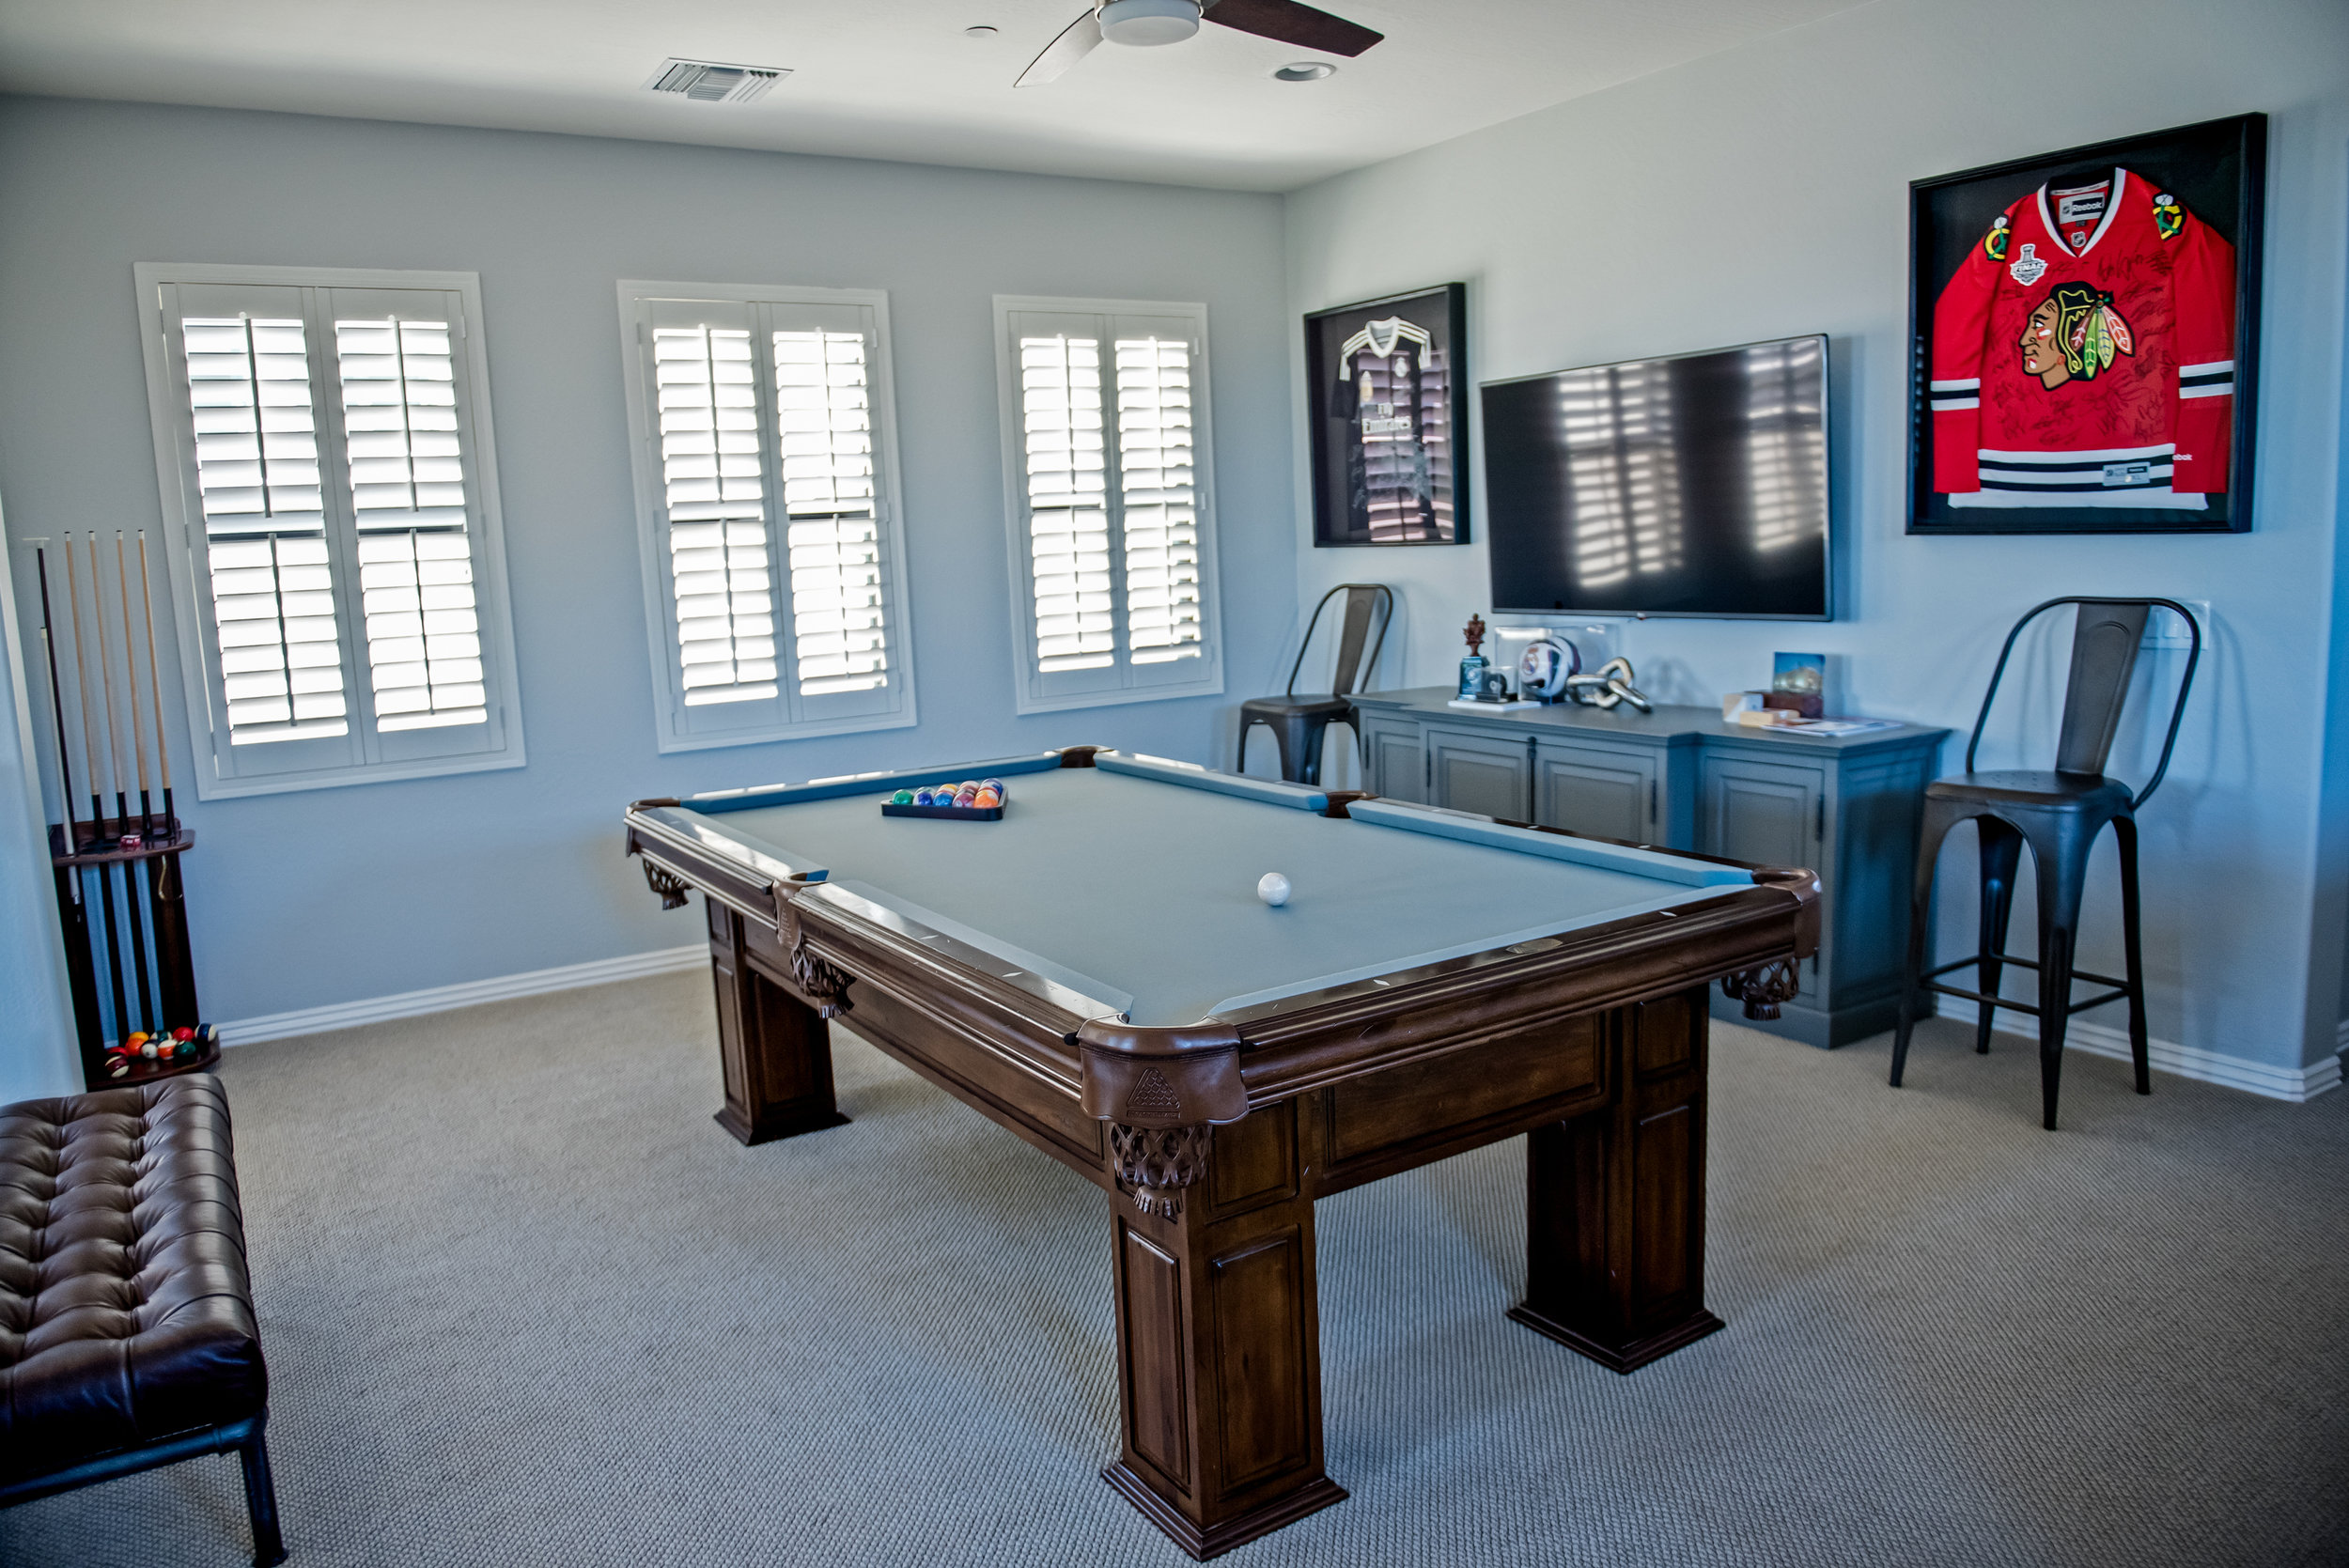 16 - Game+room+Pooltable+Jerseys+Masculine+Mancave.jpg